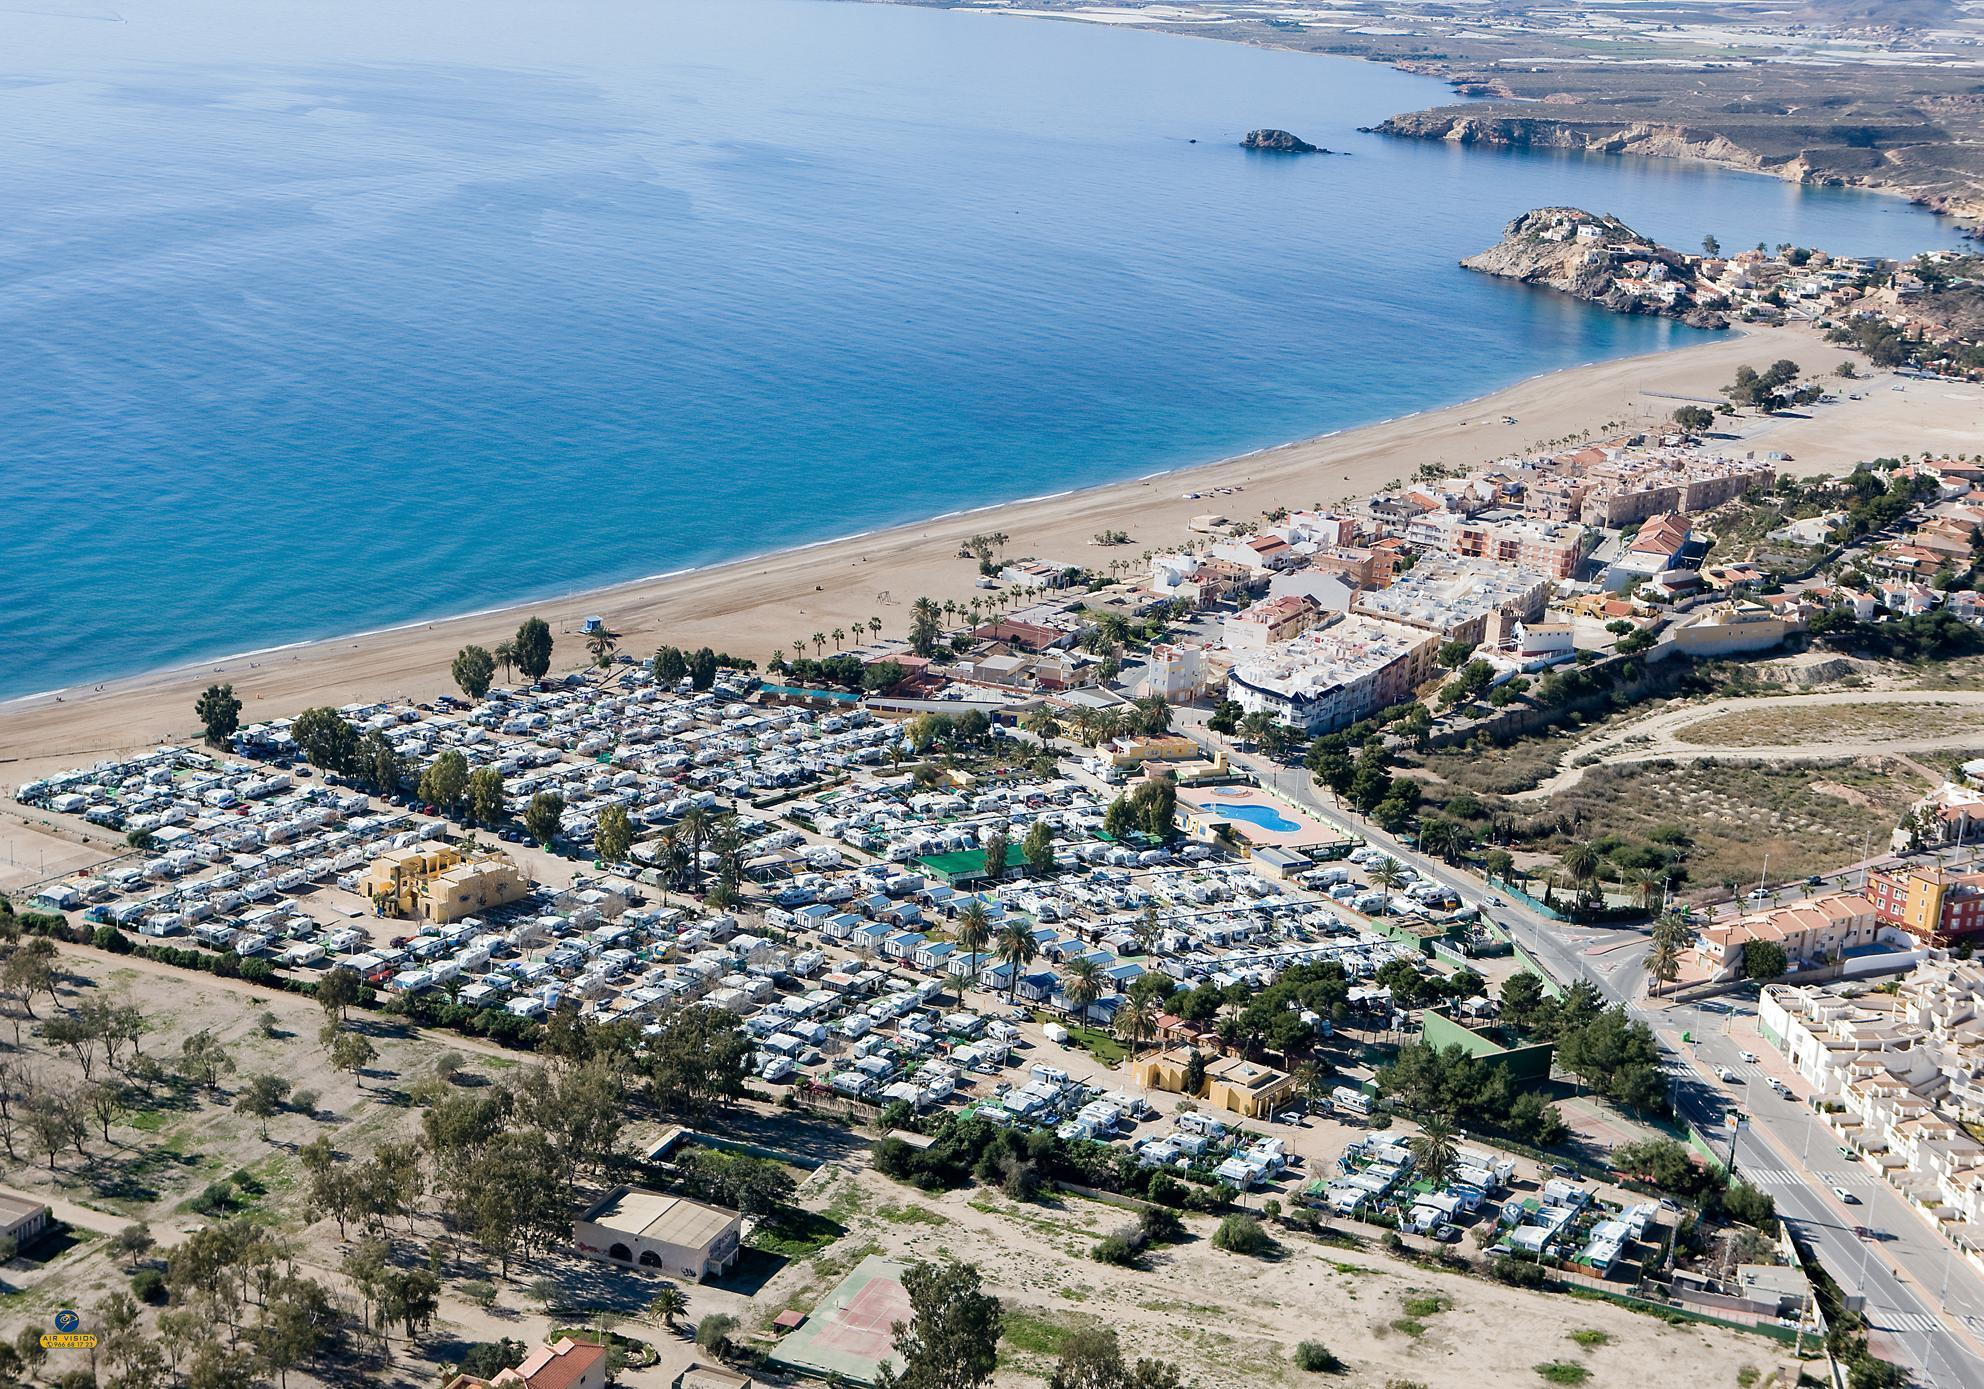 Murcia, Spain: Anger at motorhome campers in Bolnuevo